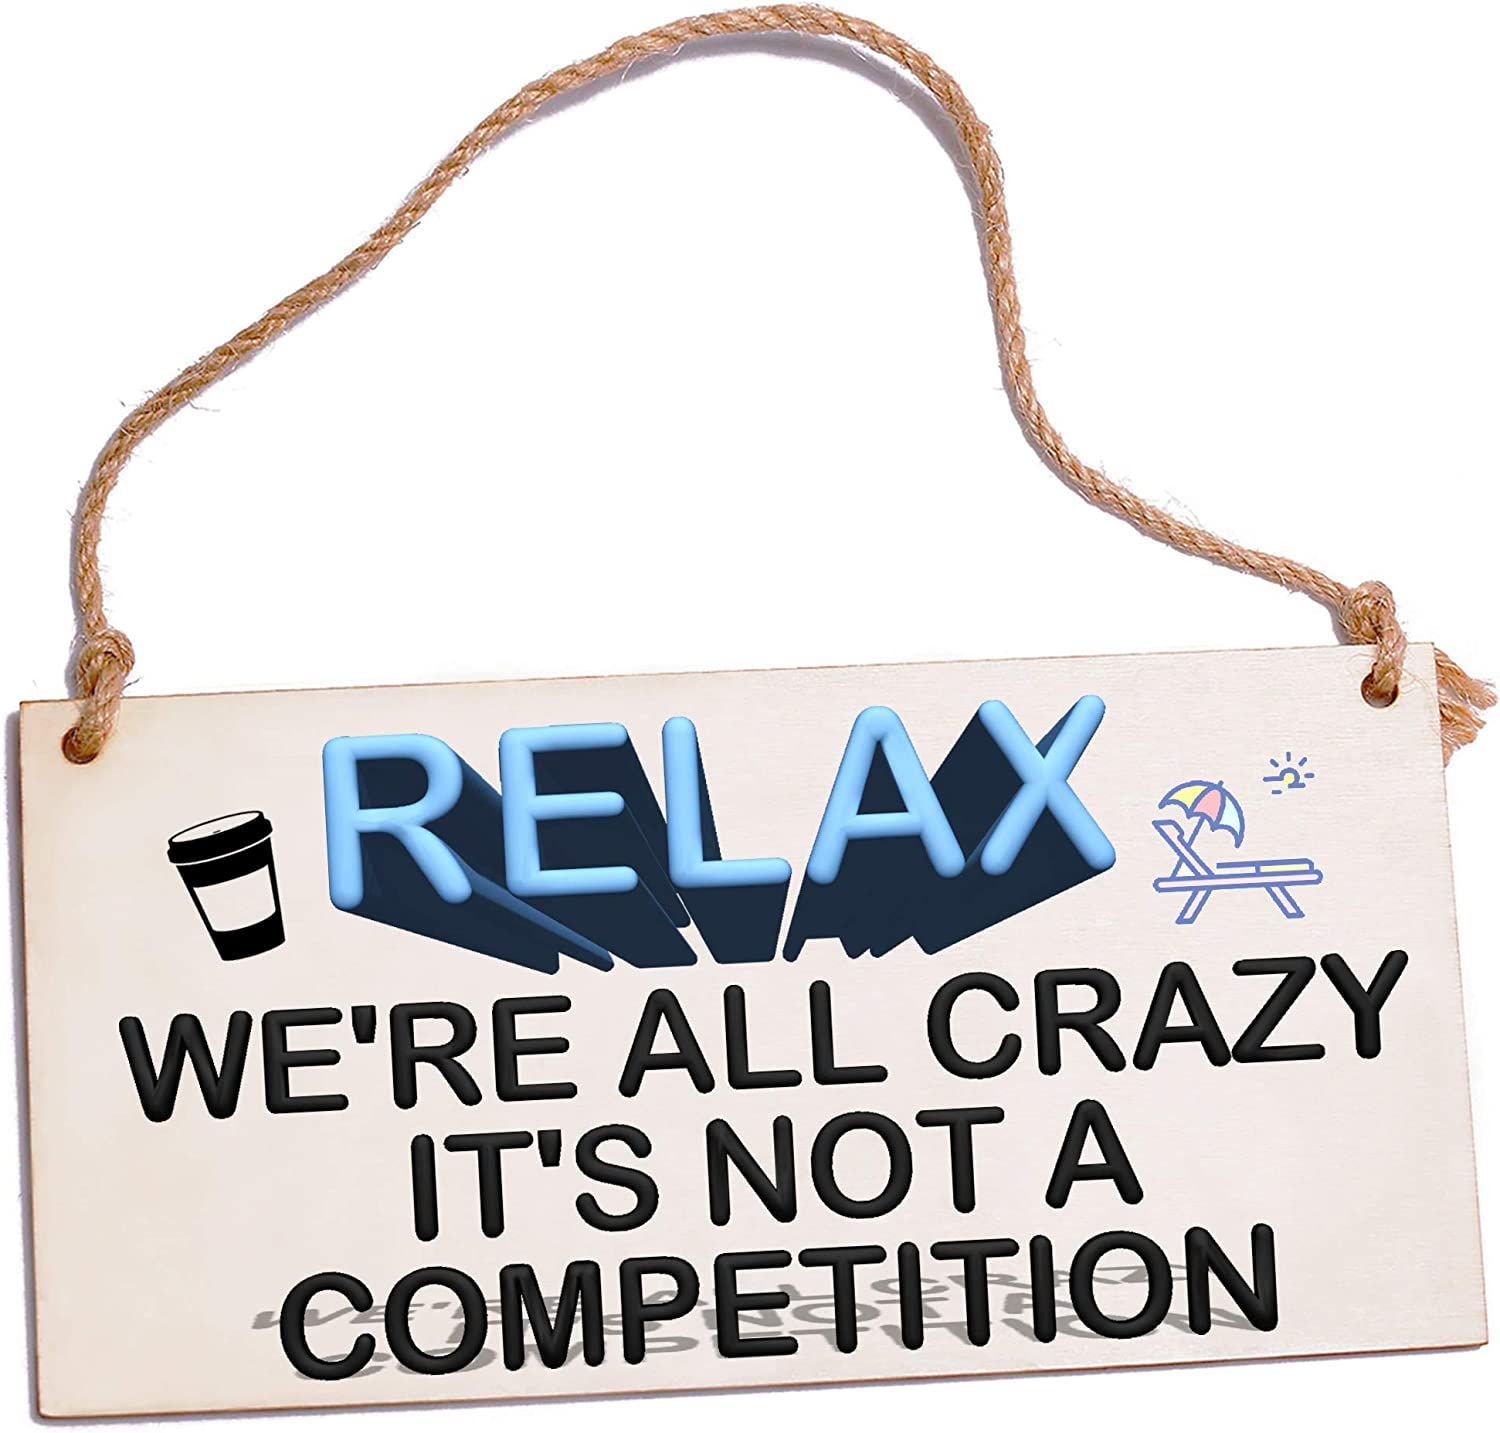 Office Home Decor under 10 Relax We're All Crazy Funny Signs Cubicle Decor Quotes Wall Decor Desk Cute Decorations Wooden Sign with Sayings for Office Living Room Clearance Crazy Gifts Halloween